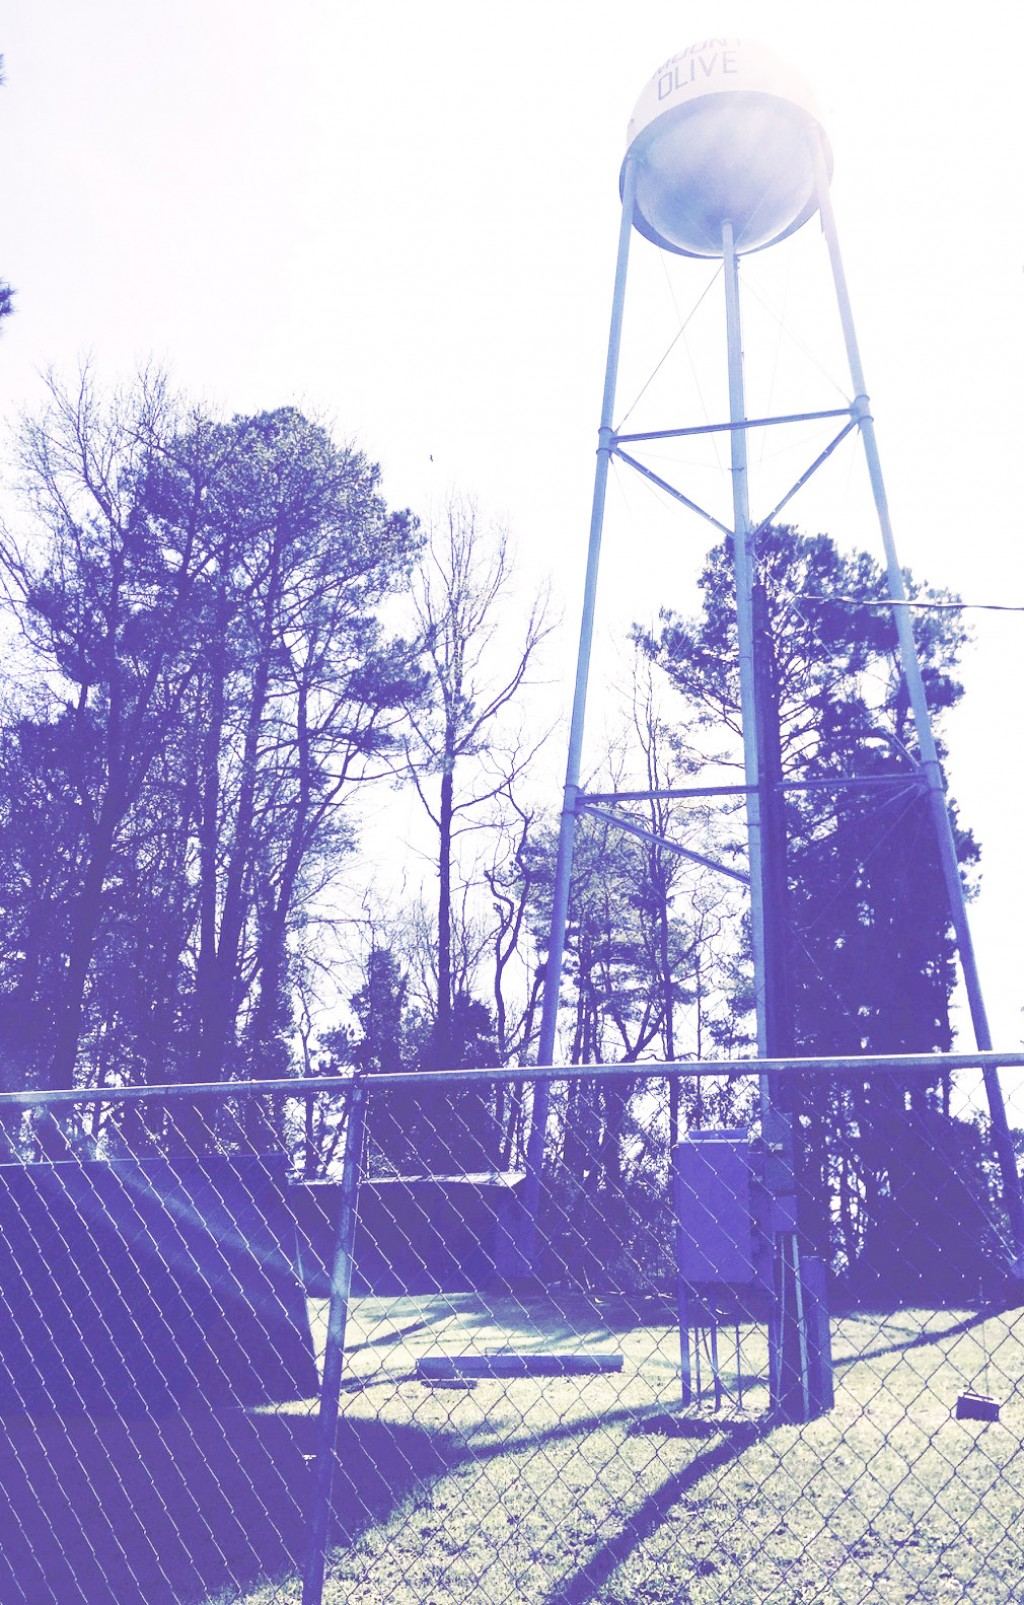 Mt. Olive community water tower stands 130 feet high. The John Frazier drone makes it easier to check for leaks and other touble.